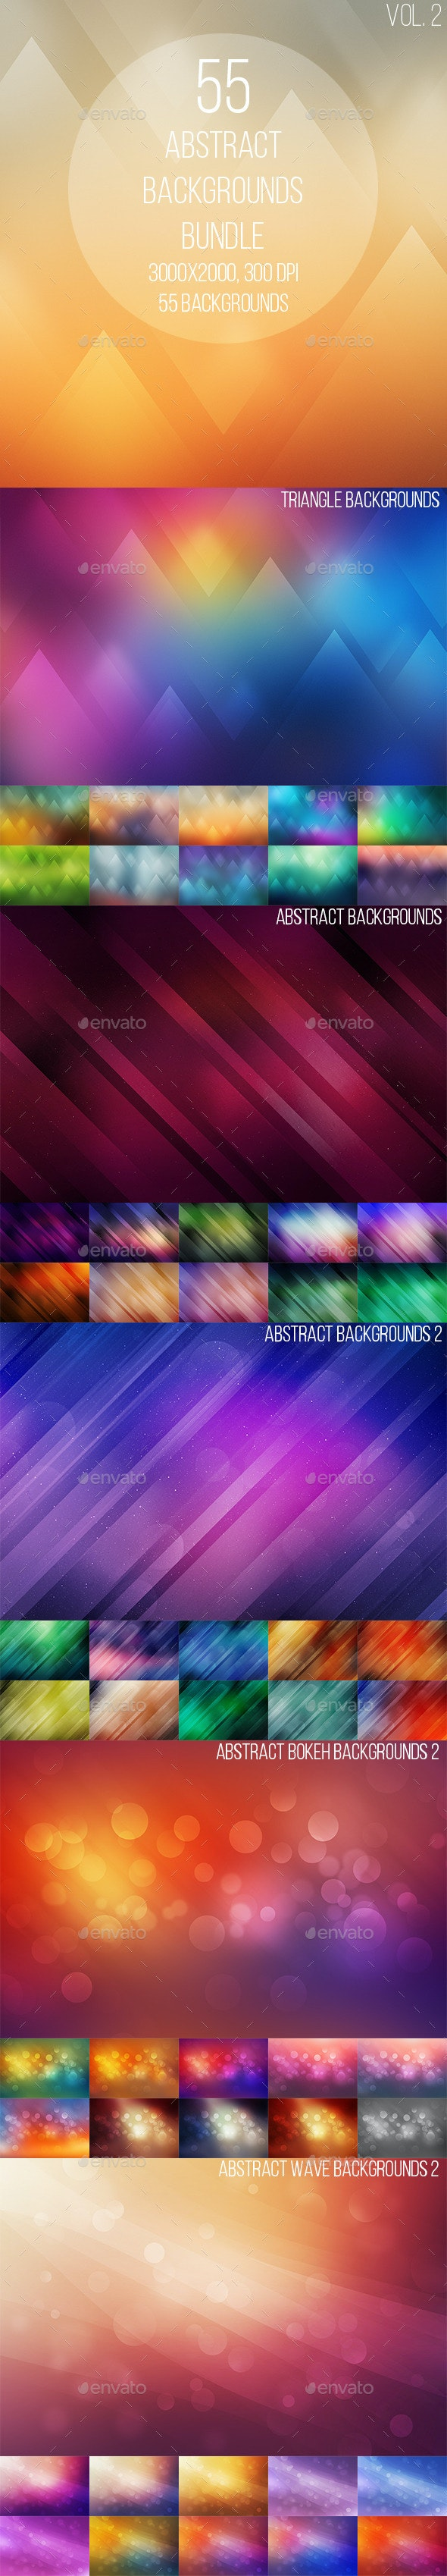 55 Abstract Backgrounds Bundle 2 - Abstract Backgrounds